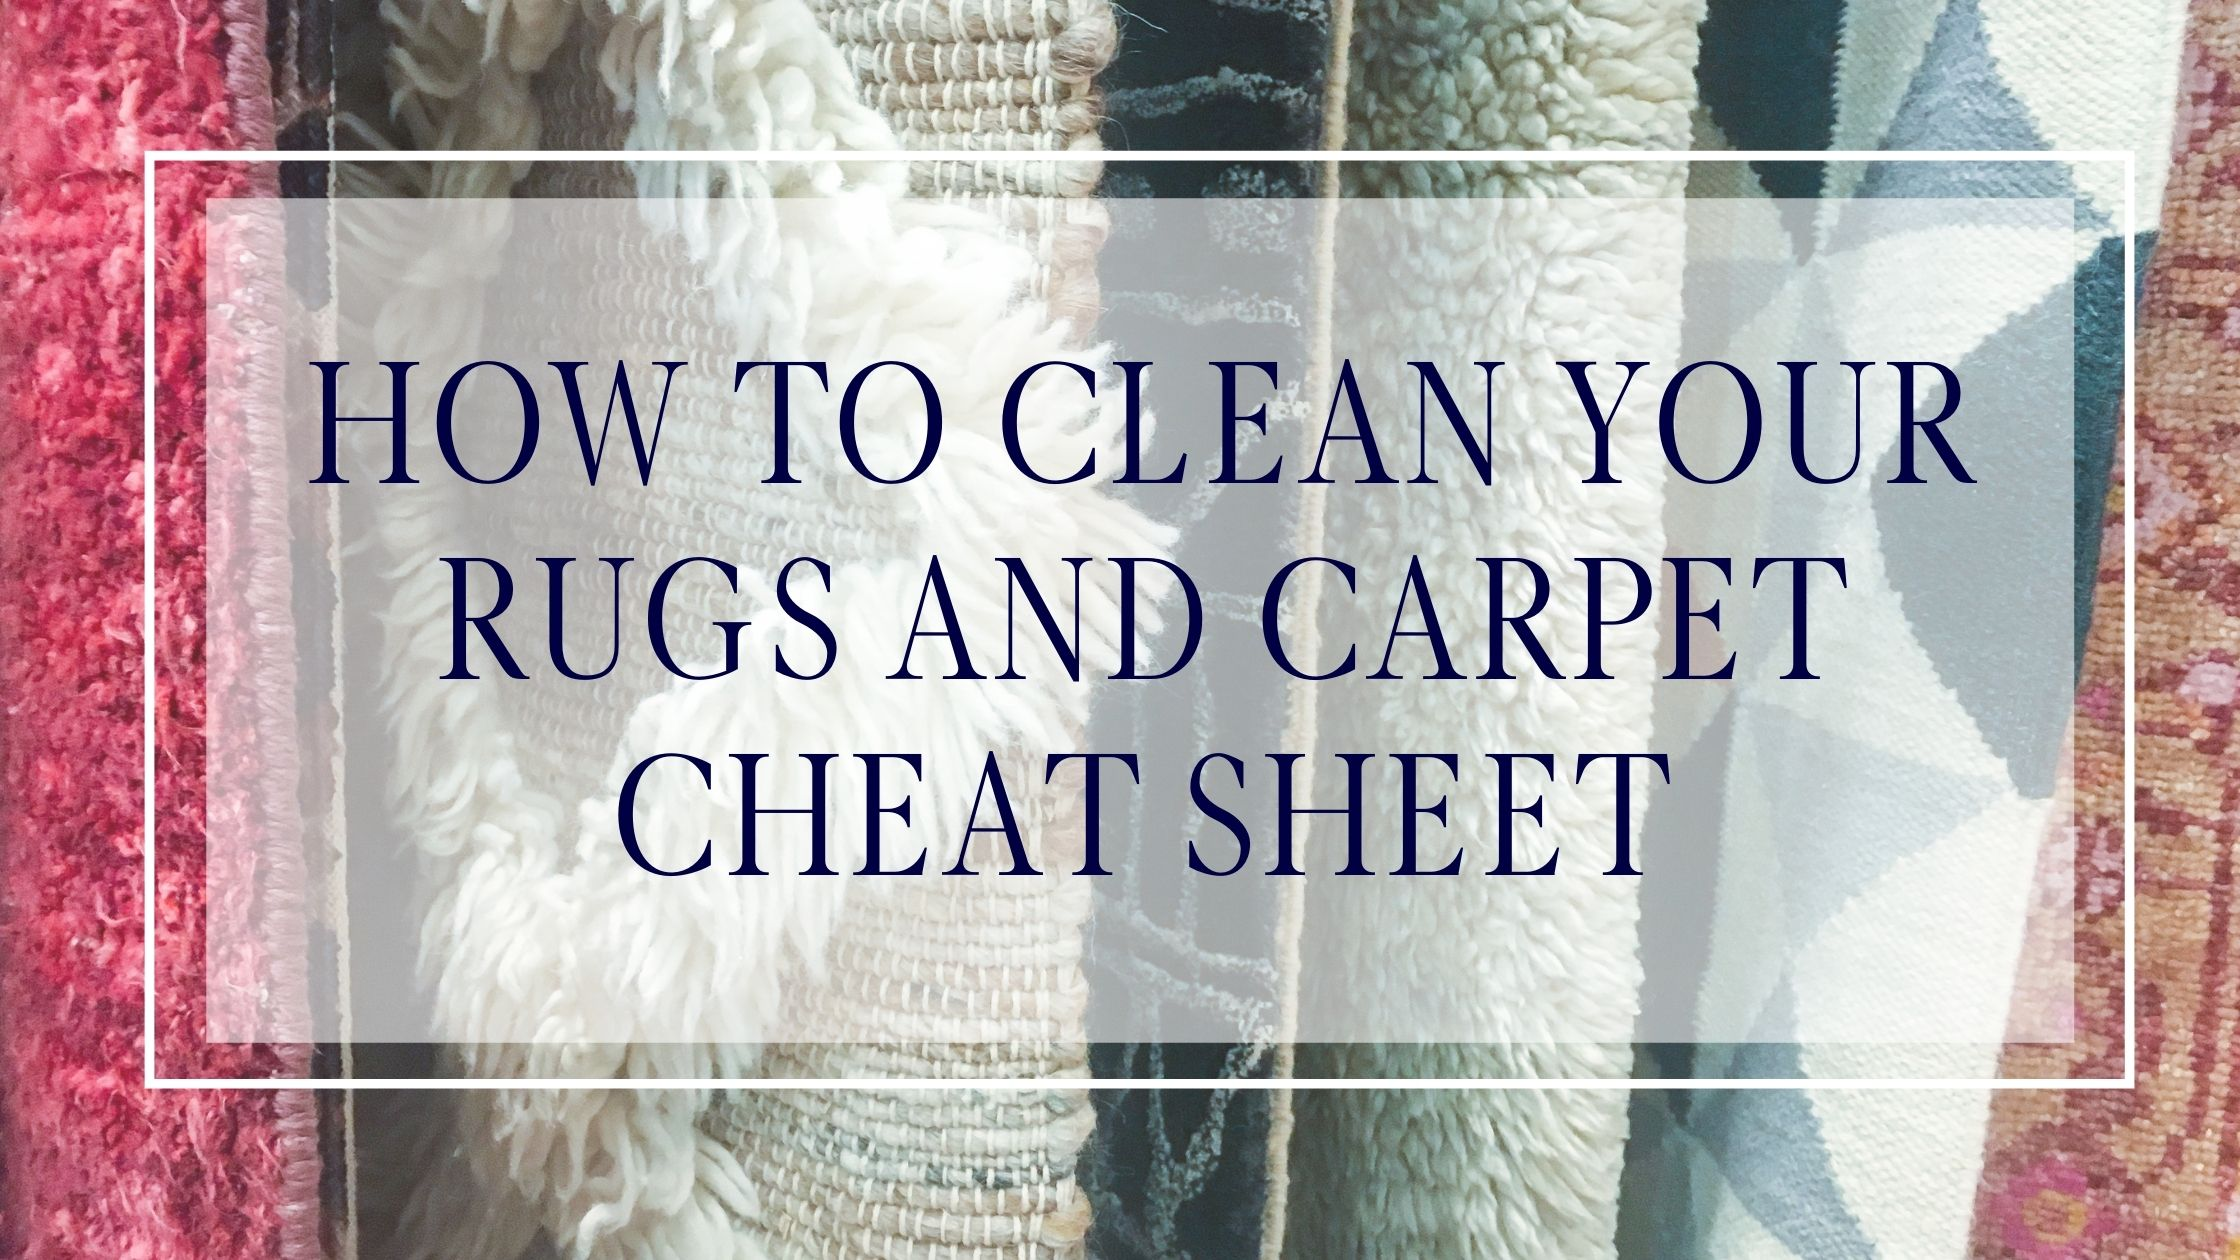 How to Clean Your Rugs and Carpet Cheat Sheet